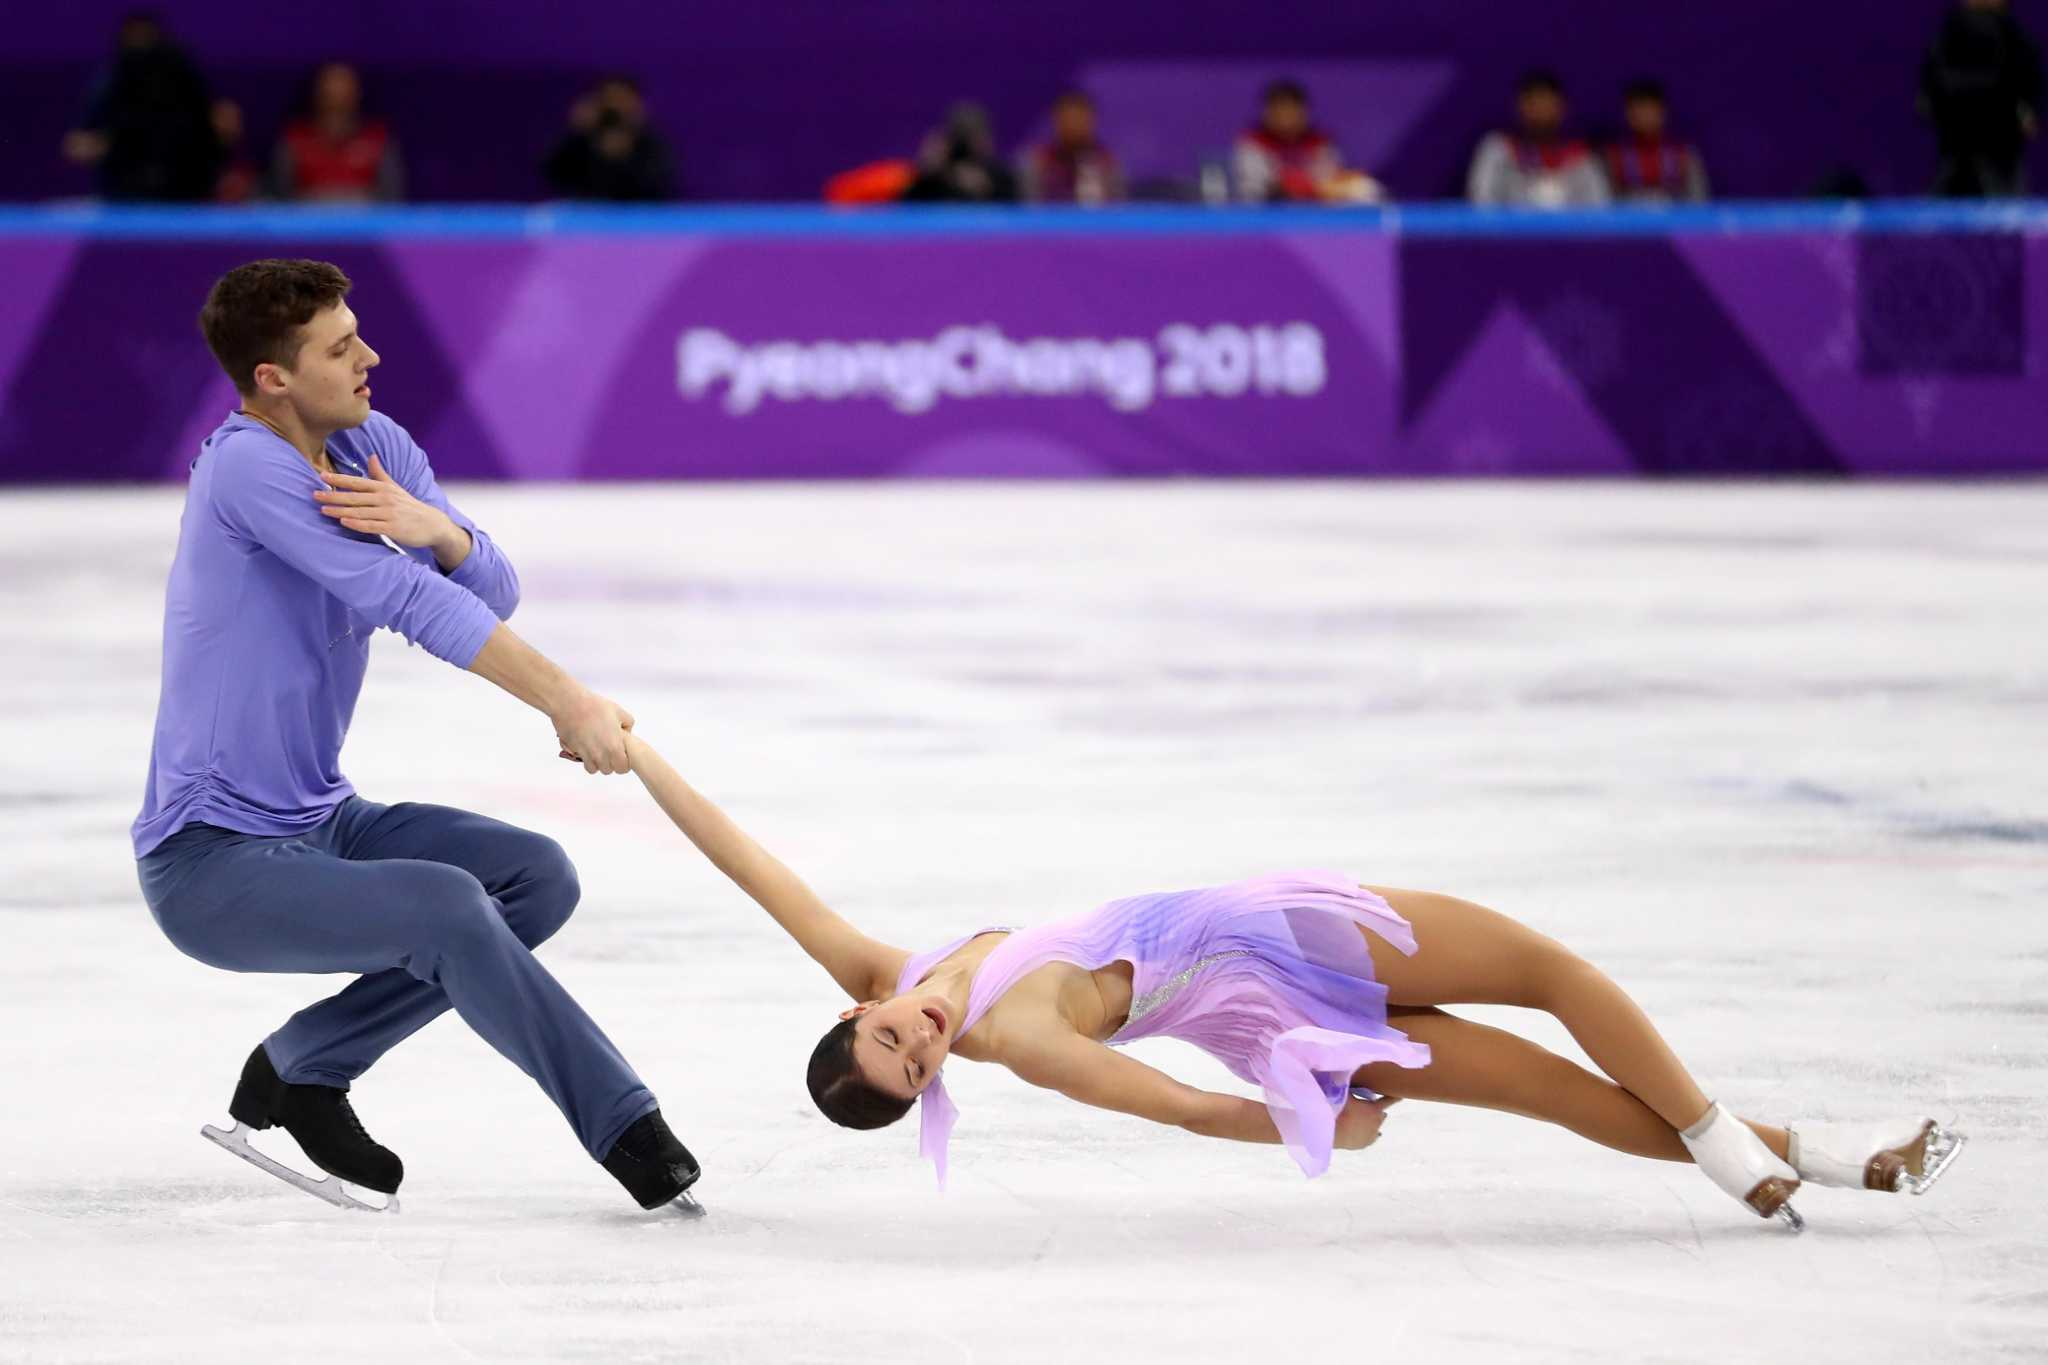 Olympic skating pairs dating services